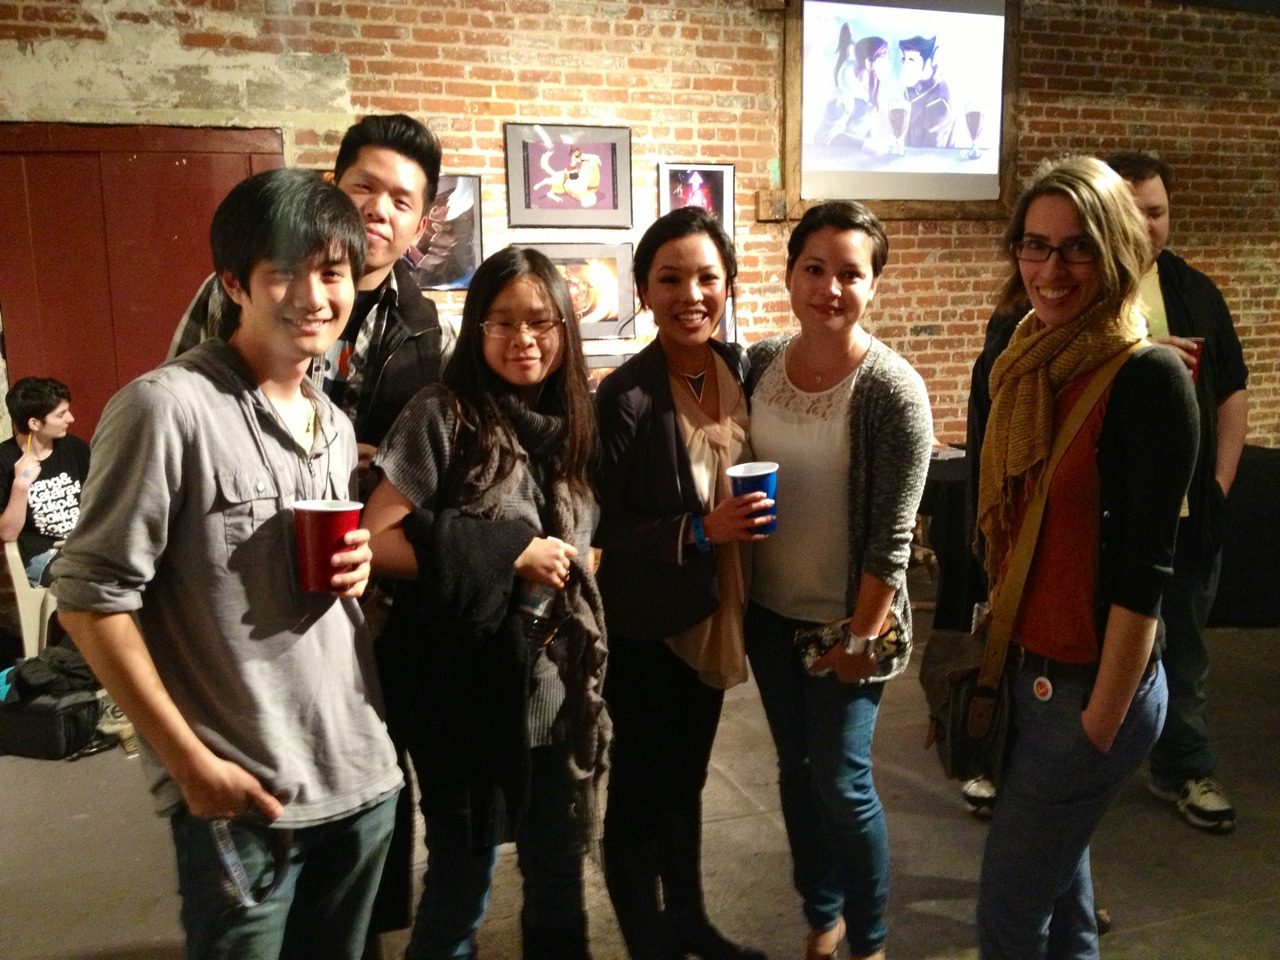 Some of the Korra crew at the Korra fan art show last night. What a great event! I really enjoyed all of the art and costumes, and meeting lots of nice, talented folks. Thanks to PixelDrip Gallery for organizing this, and to everyone who sent in their artwork! Very awesome and overwhelming! Love, Bryan  P.S. The event is still going on today, if you can make it. I won't be able to attend today, as I have a lot of non-fan Korra art to do, but they are still raffling off my Naga print, so I will be there in spirit.